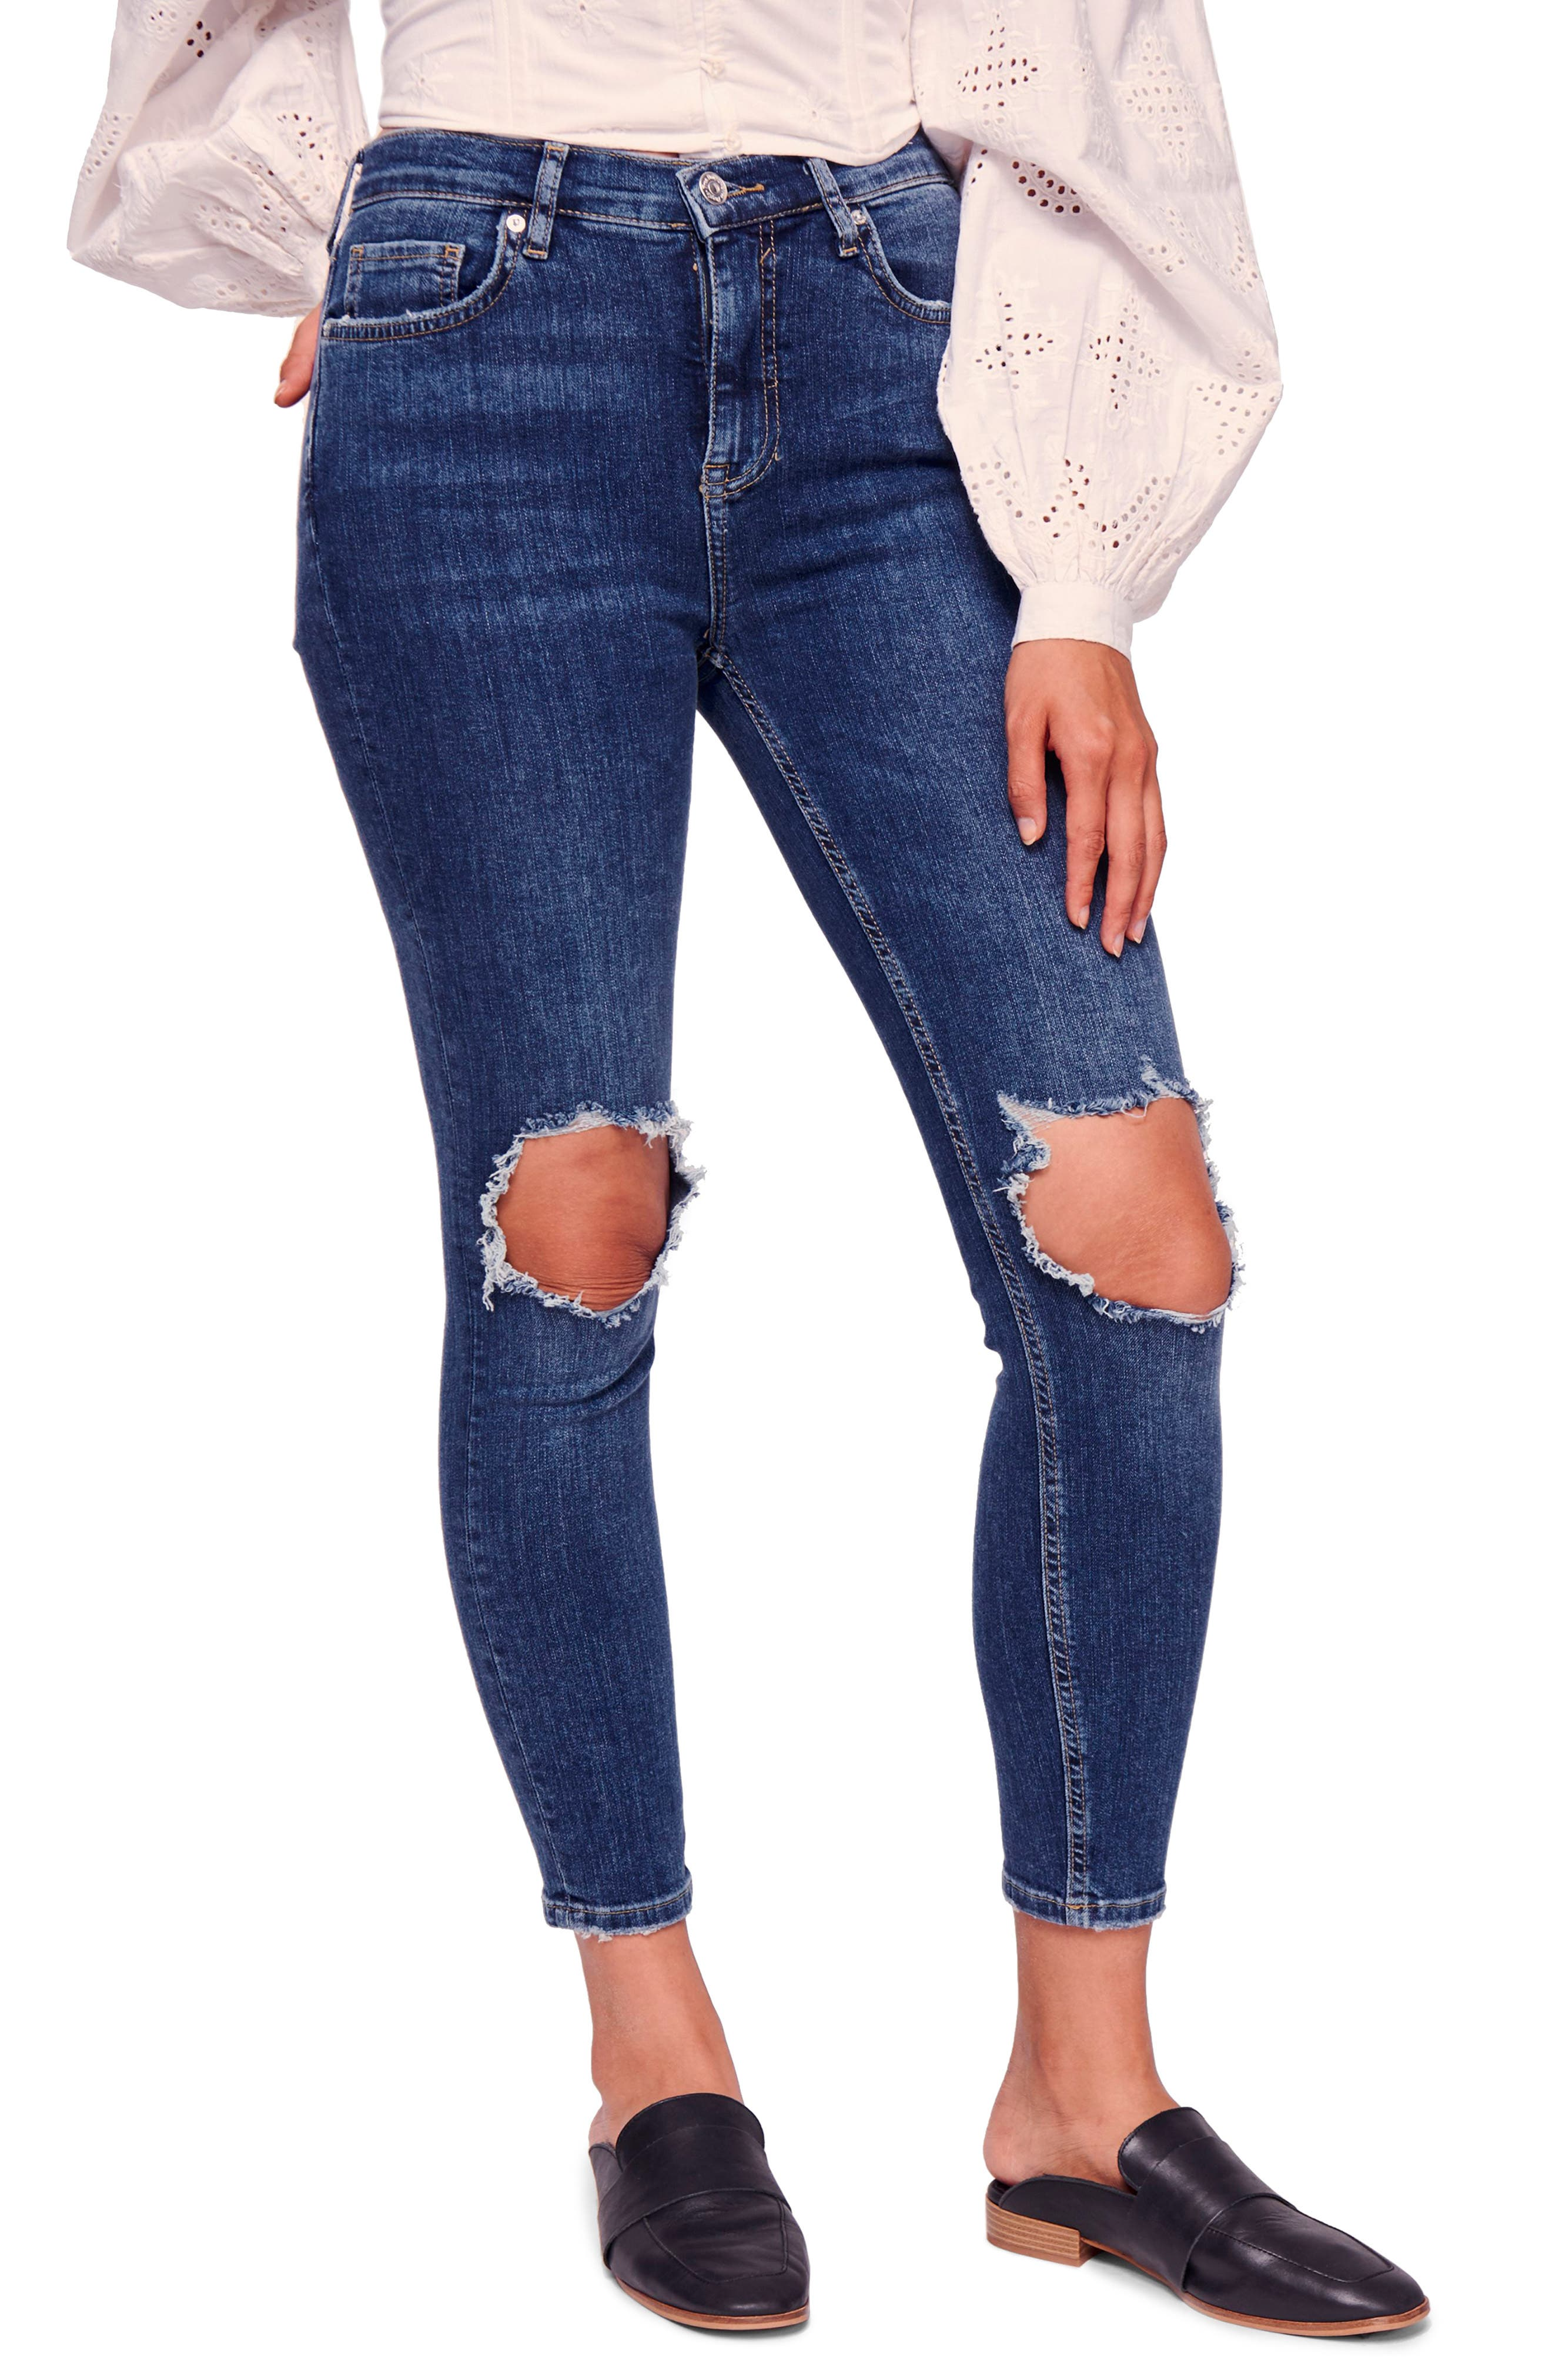 We the Free by Free People Ripped High Waist Ankle Skinny Jeans,                             Main thumbnail 1, color,                             400